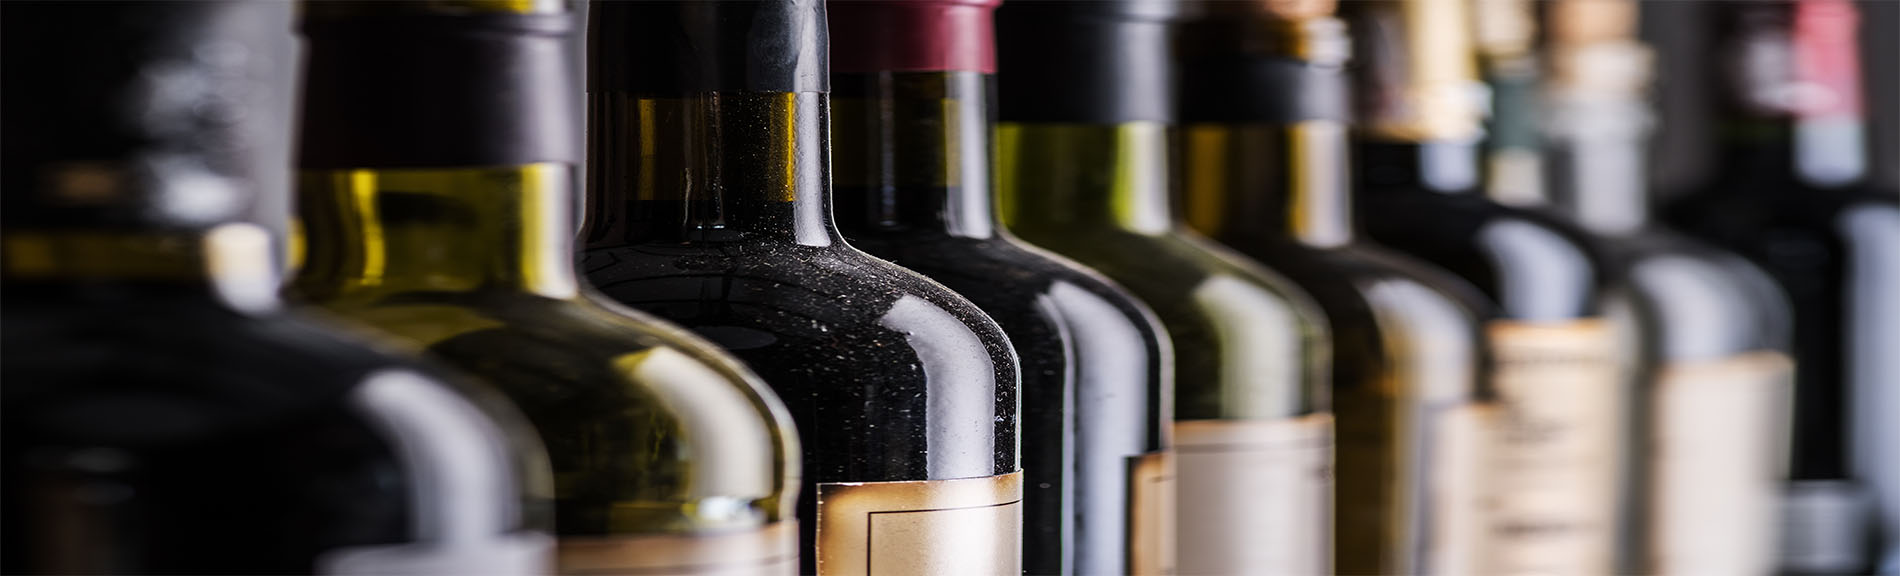 USD 14MM Incremental Annual Sales Due to Optimized Market Mix Strategy For an American Wine Retailer